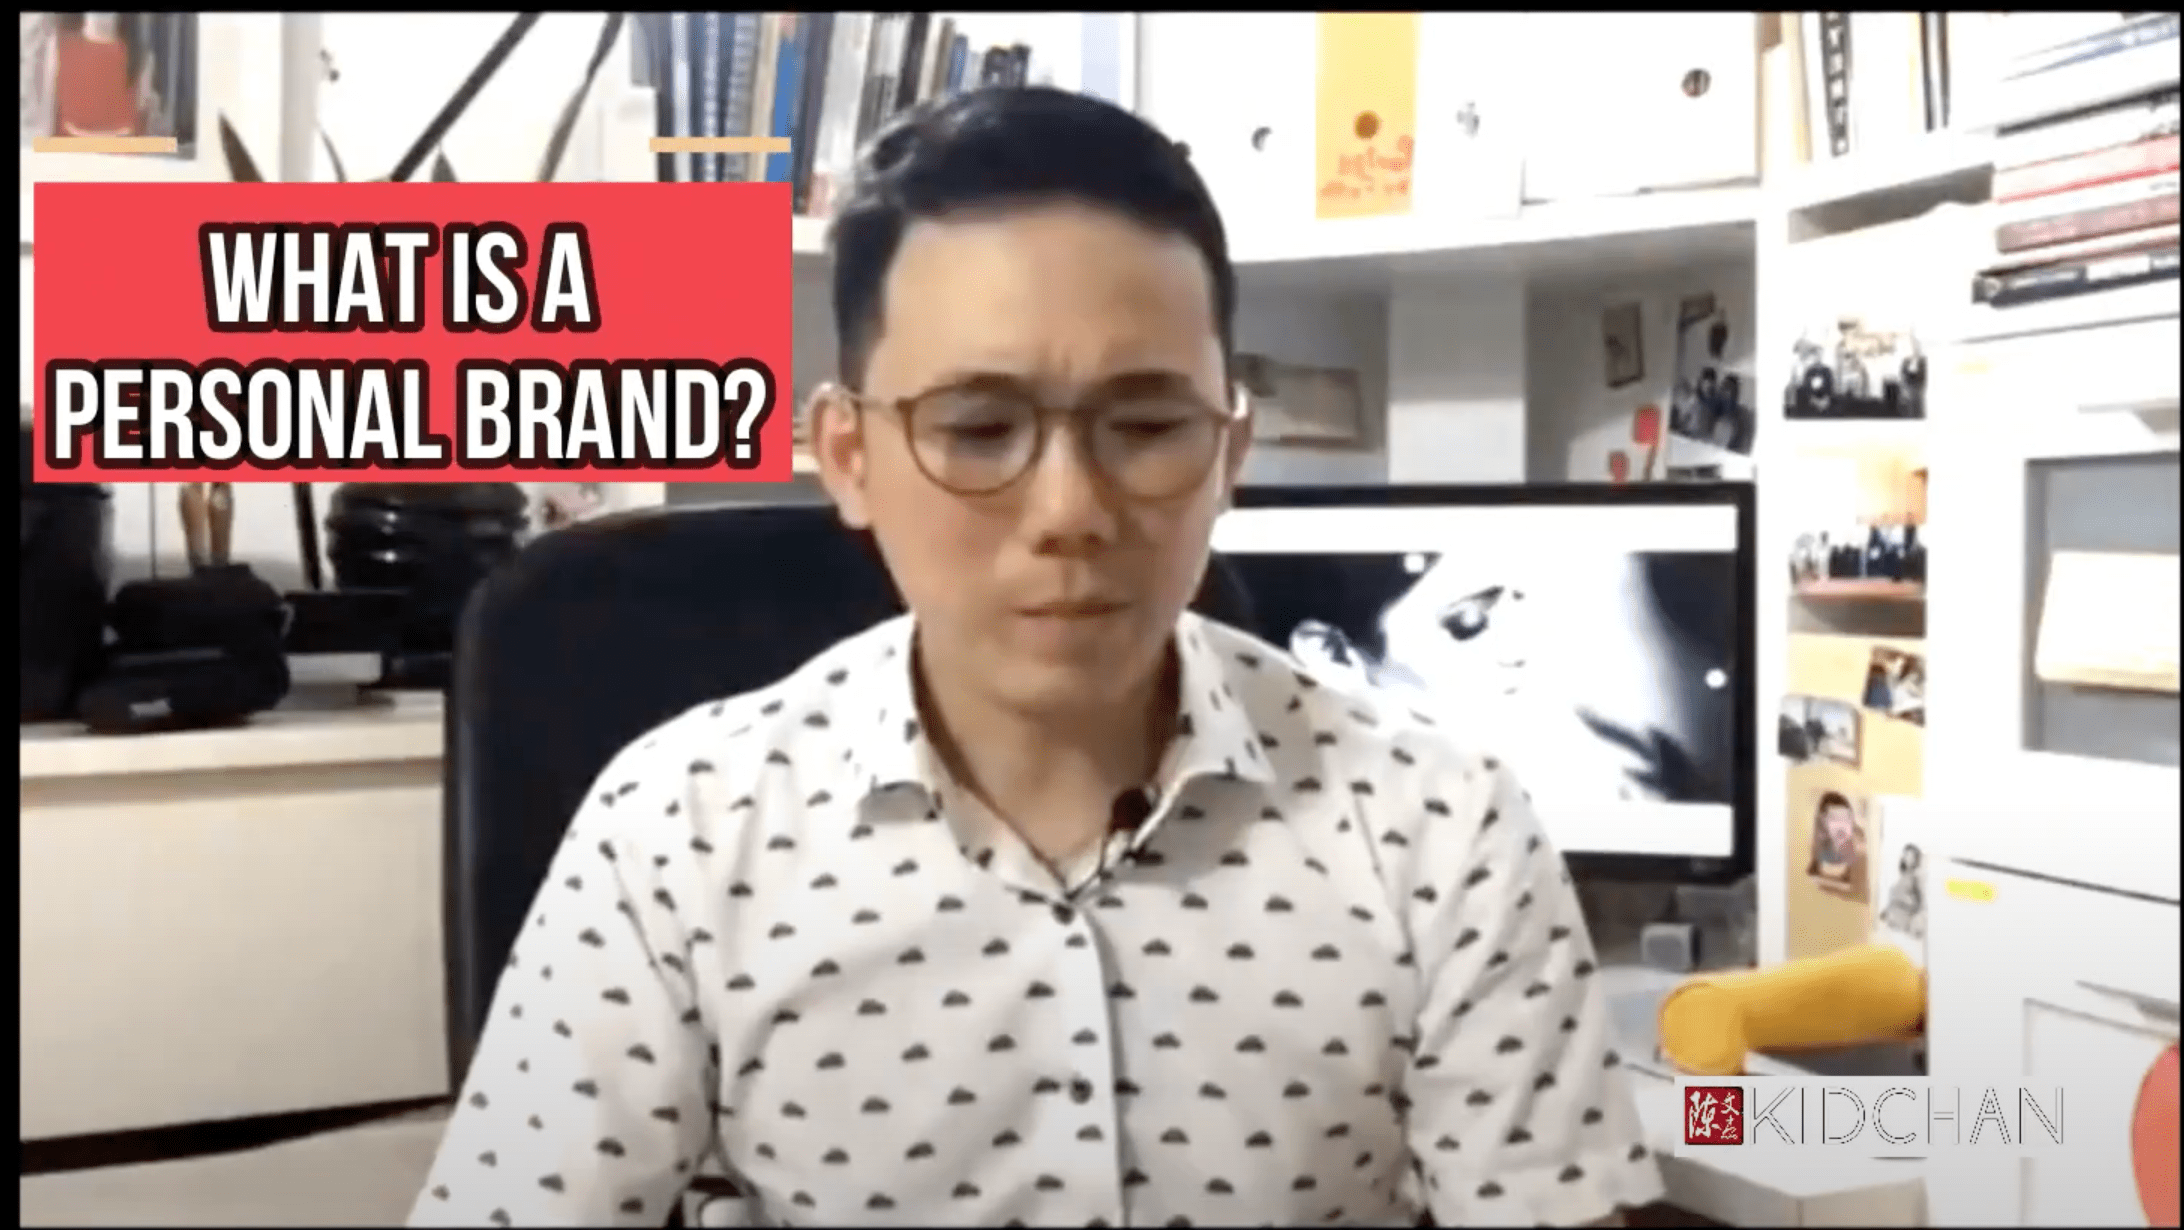 what is personal branding kid chan